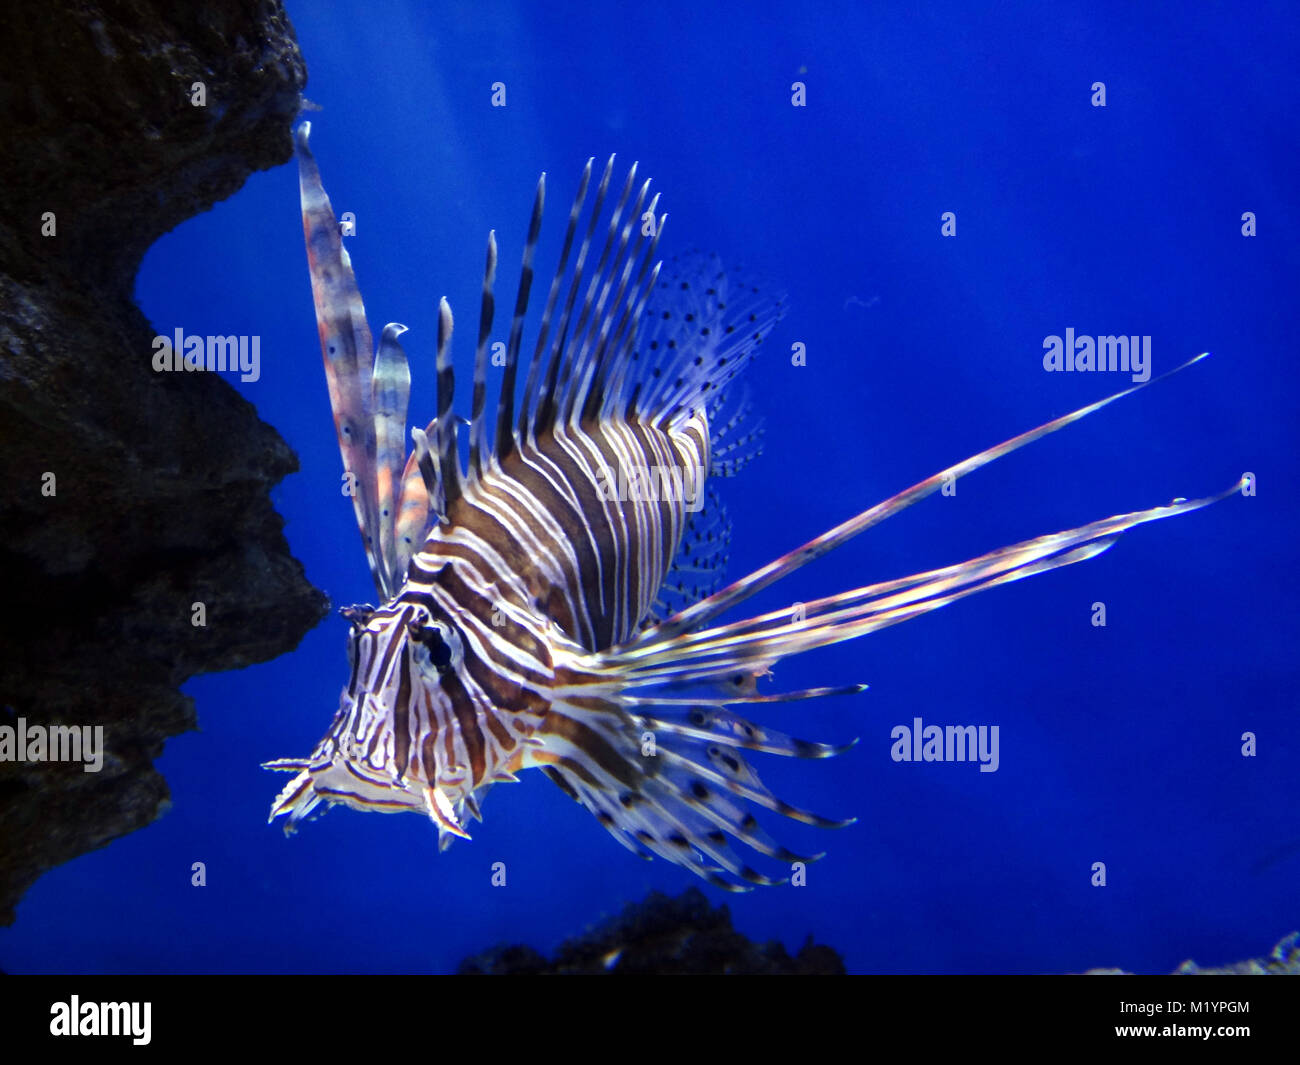 Lion fish underwater - Stock Image